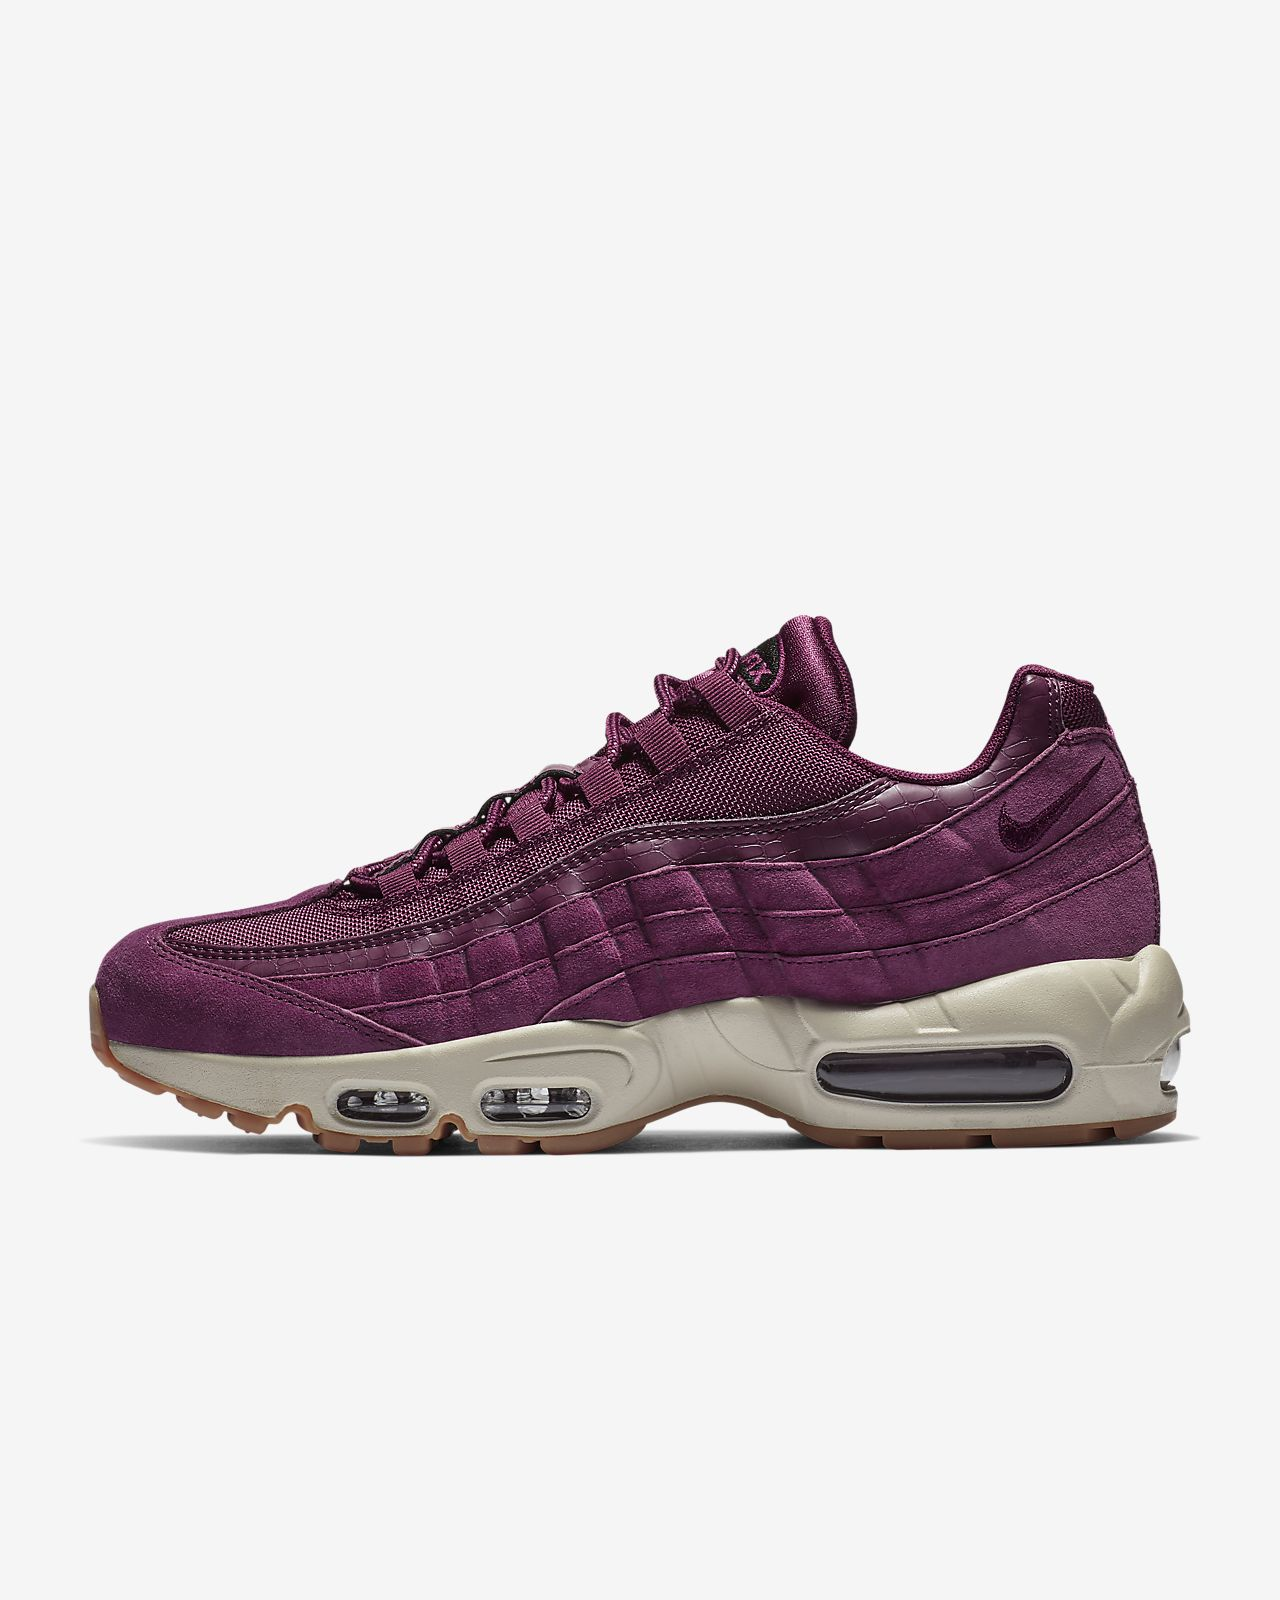 548719ee0f2f Nike Air Max 95 SE Men s Shoe. Nike.com